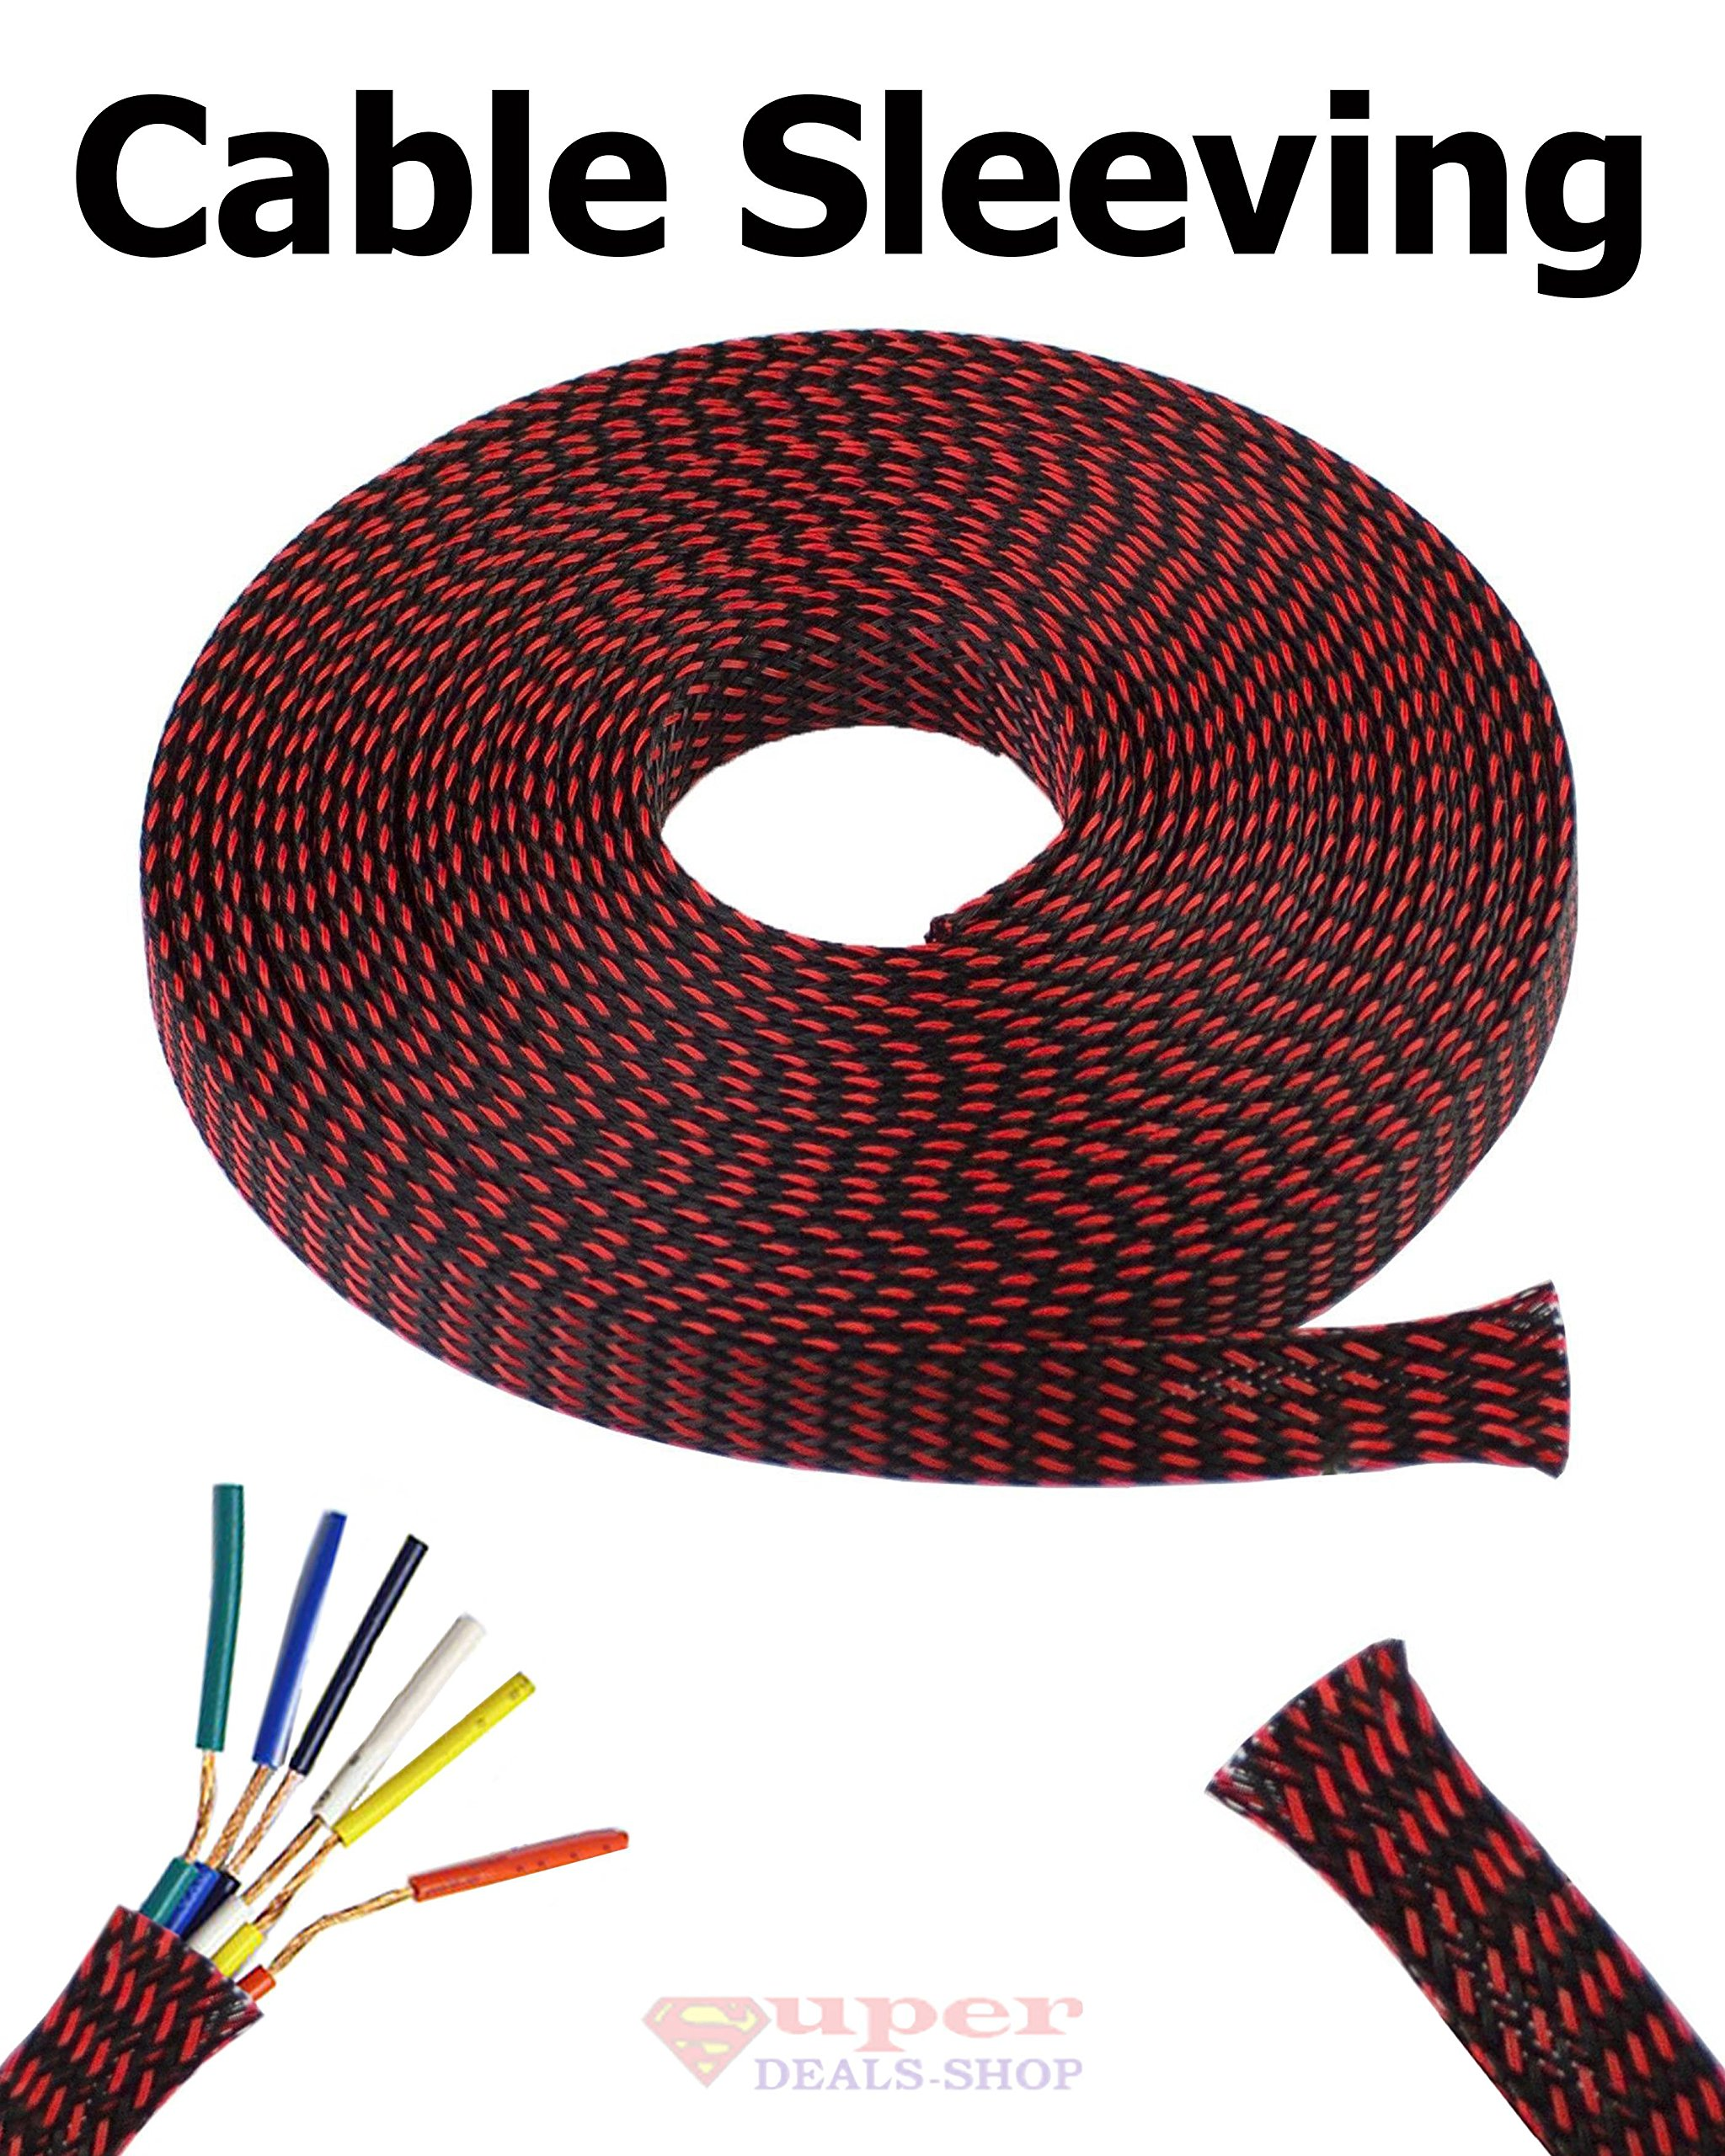 3/8'' Expandable Wire Cable Sleeving Expandable Braided Sleeving Braided Cable Sleeve Expandable Braided Cord Sleeve Cord Managment Super-Deals-Shop (50 FT, Black and Red)